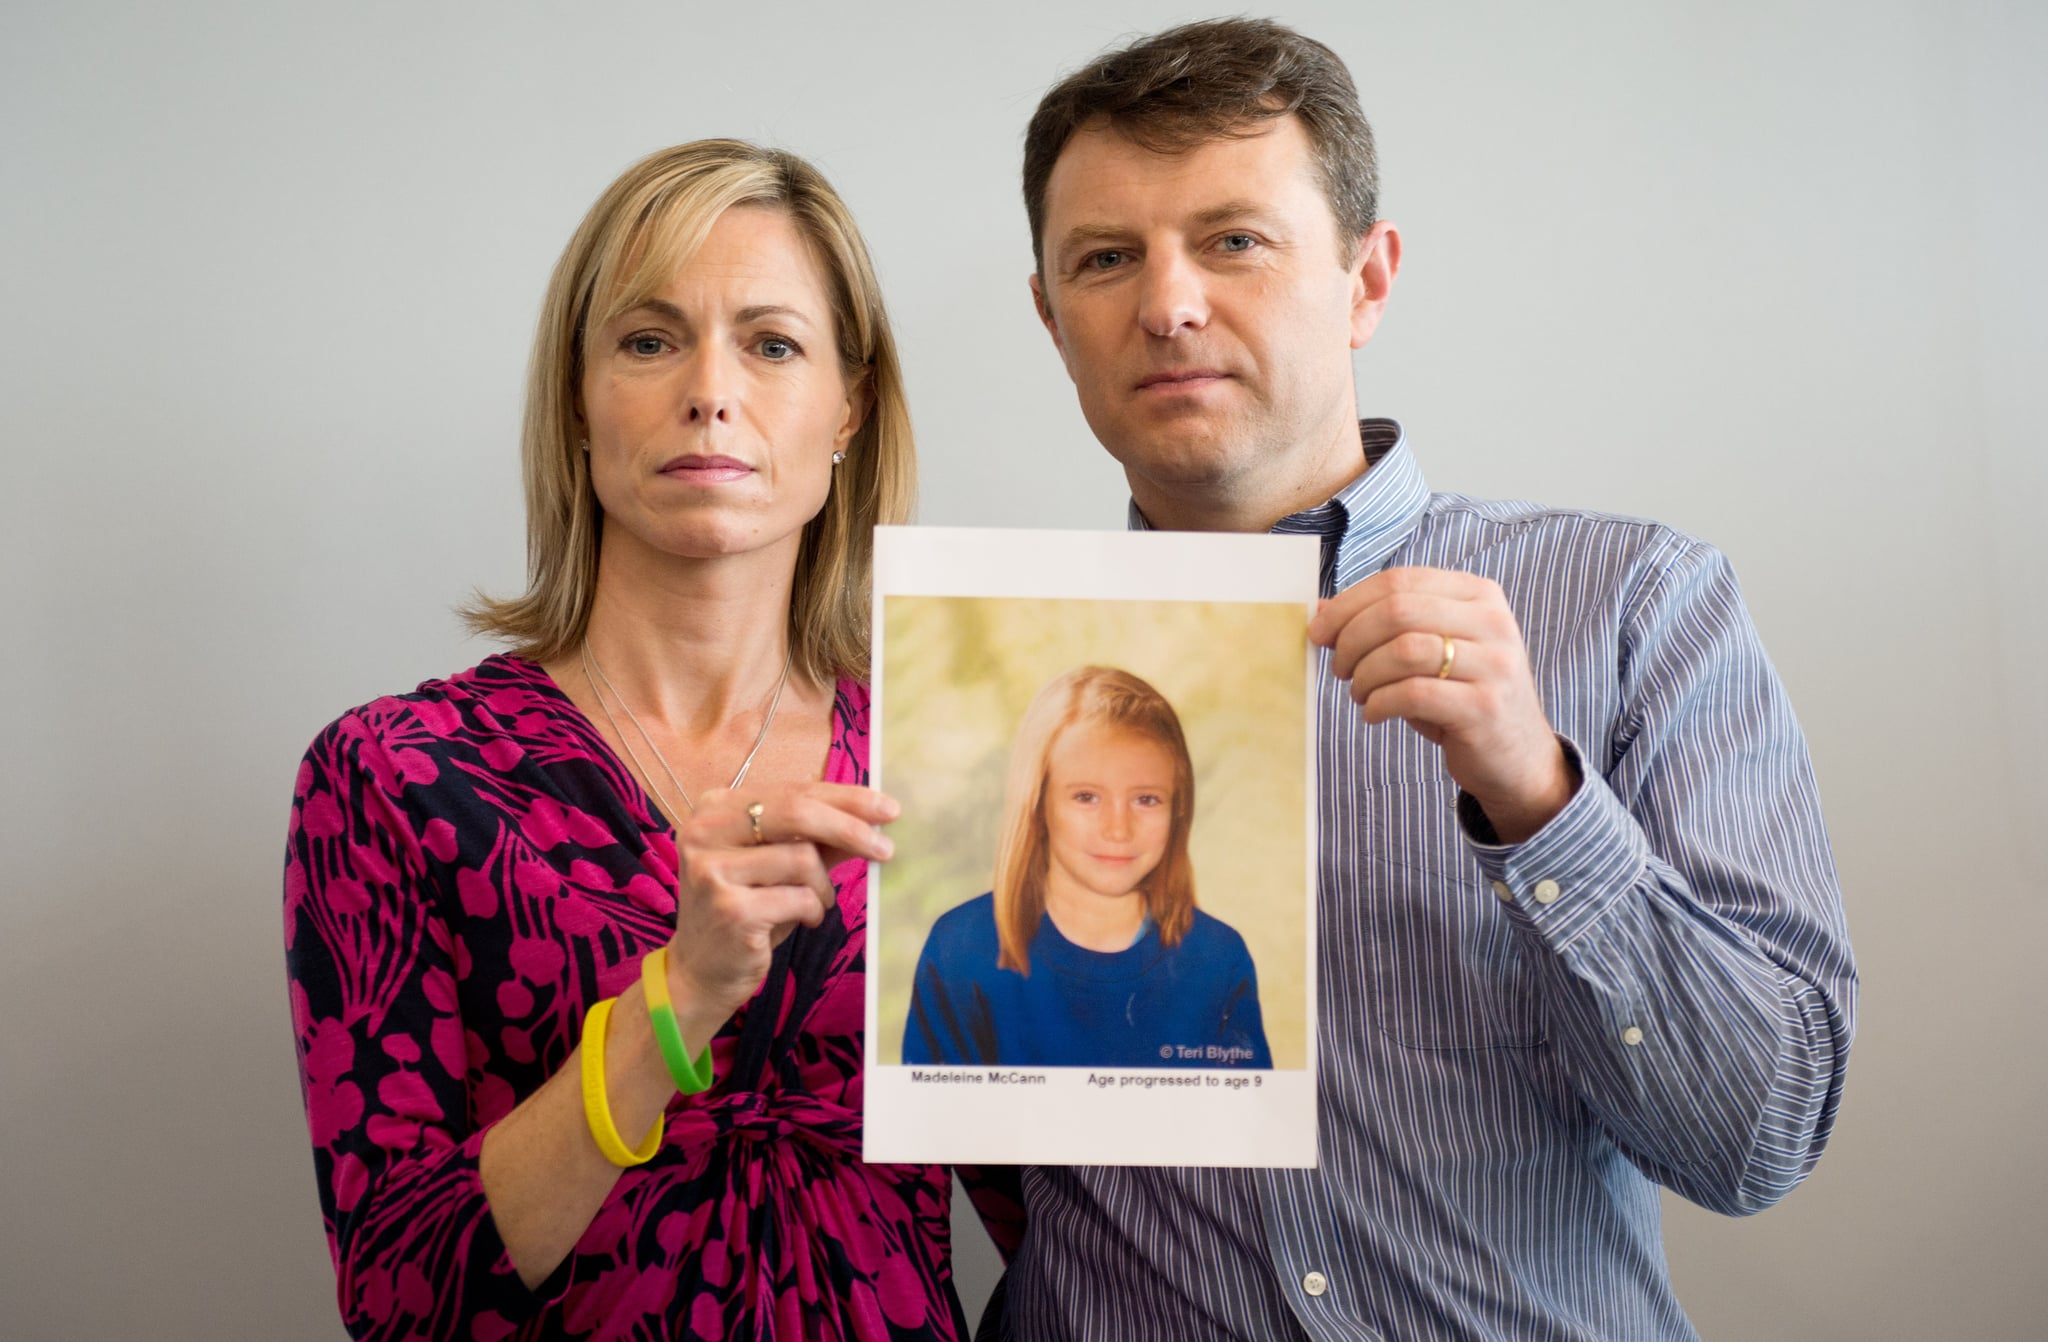 Parents of missing girl Madeleine McCann, Kate (L) and Gerry McCann (R) pose with an artist's impression of how their daughter might look now at the age of nine ahead of a press conference in central London on May 2, 2012 five years after Madeleine's disappearance while on a family holiday in Portugal.  Aged three at the time, the artist's impression depicts how Madeleine may now look, based on family photos of her, along with childhood images of her parents.  AFP PHOTO / LEON NEAL        (Photo credit should read LEON NEAL/AFP/GettyImages)